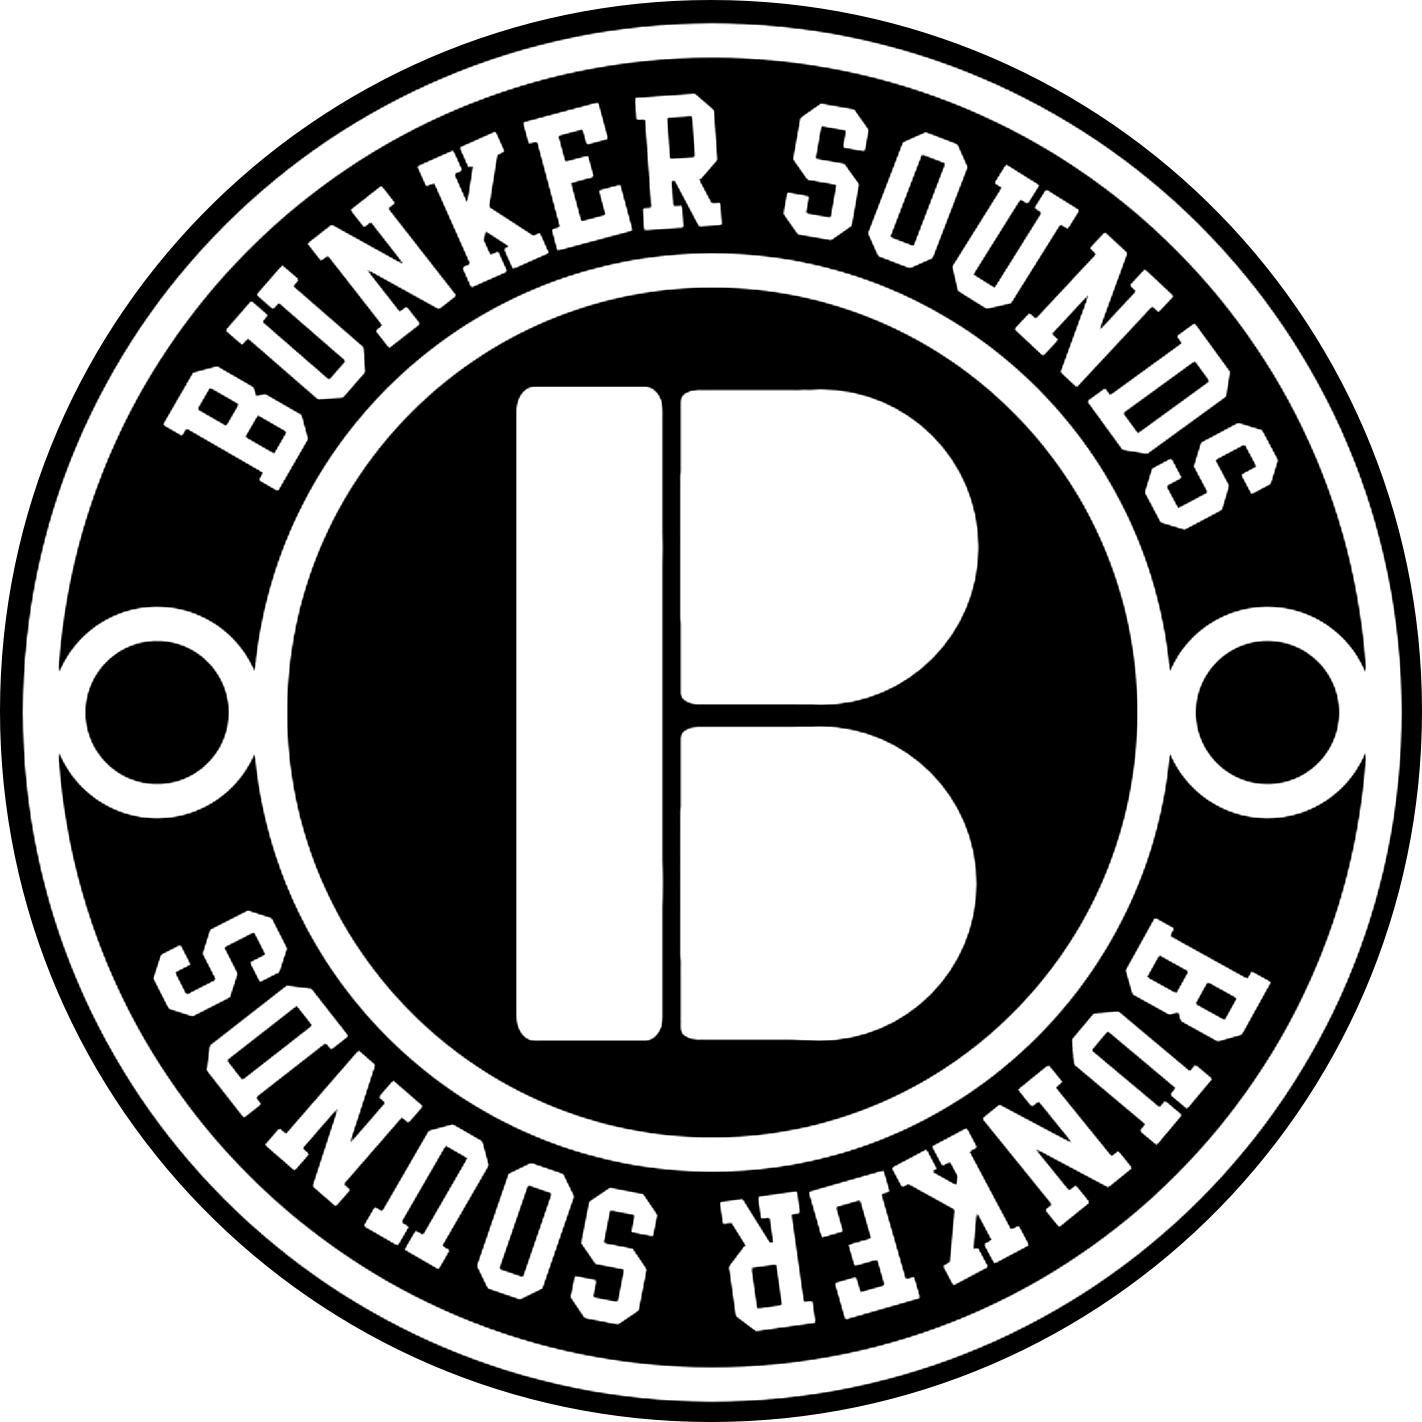 Bunker Sounds Store